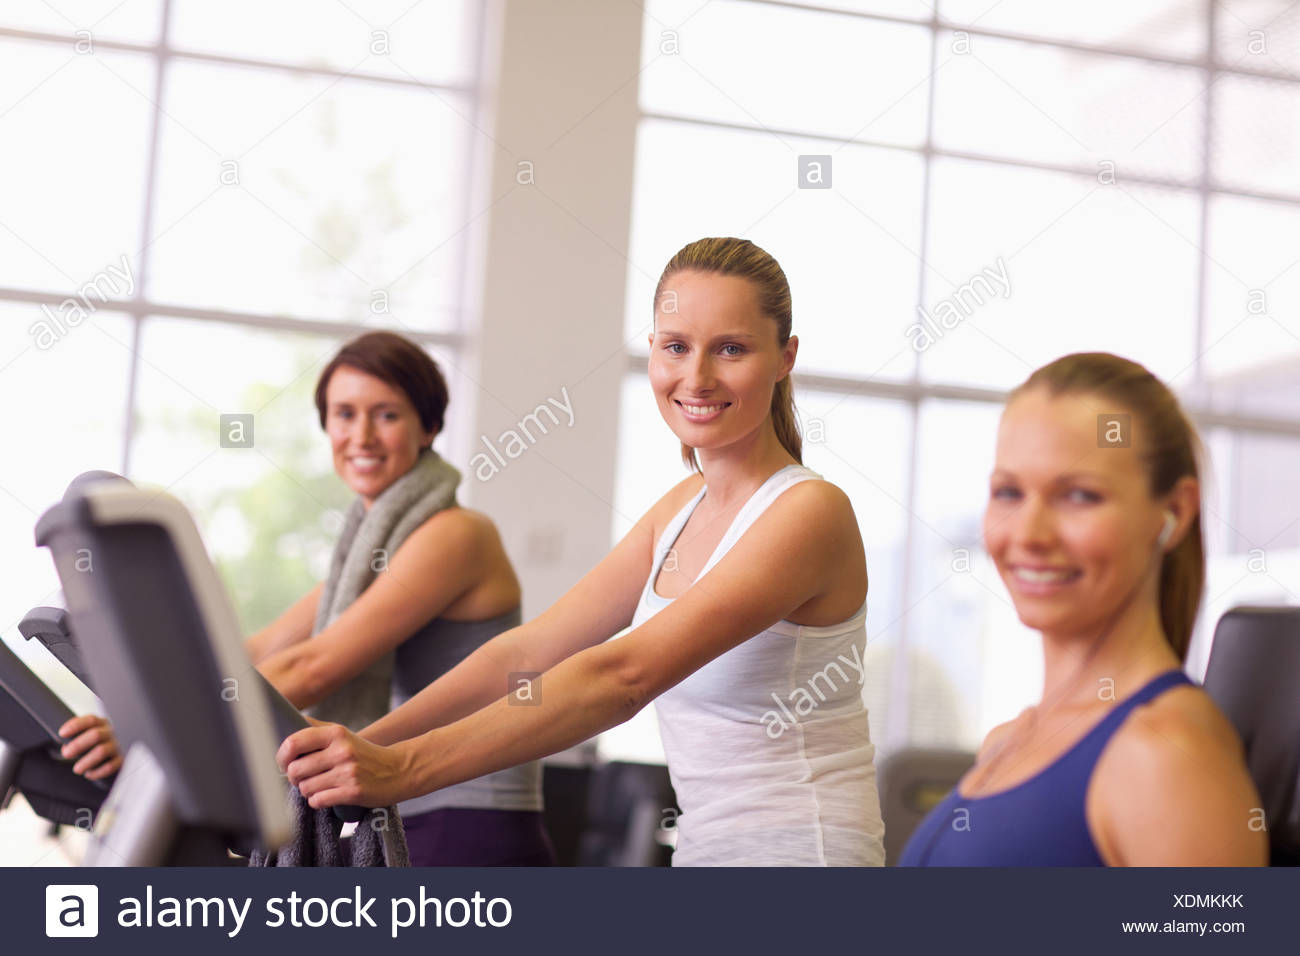 Portrait of smiling woman on exercise bike in gymnasium Photo Stock